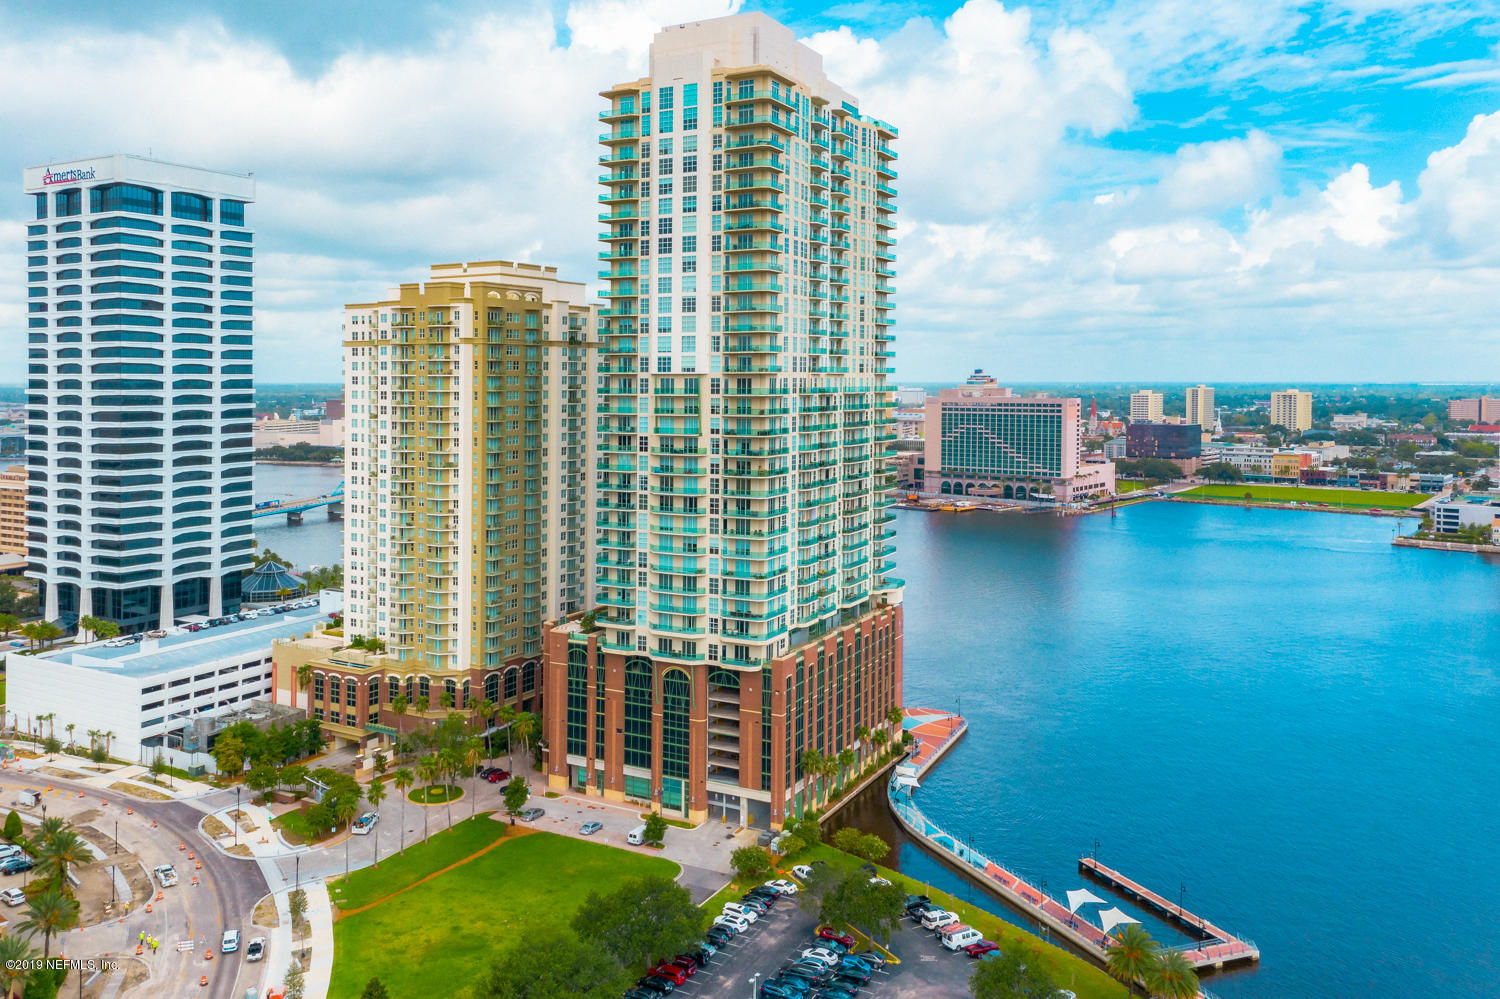 1431 RIVERPLACE, JACKSONVILLE, FLORIDA 32207, 1 Bedroom Bedrooms, ,1 BathroomBathrooms,For sale,RIVERPLACE,1011919